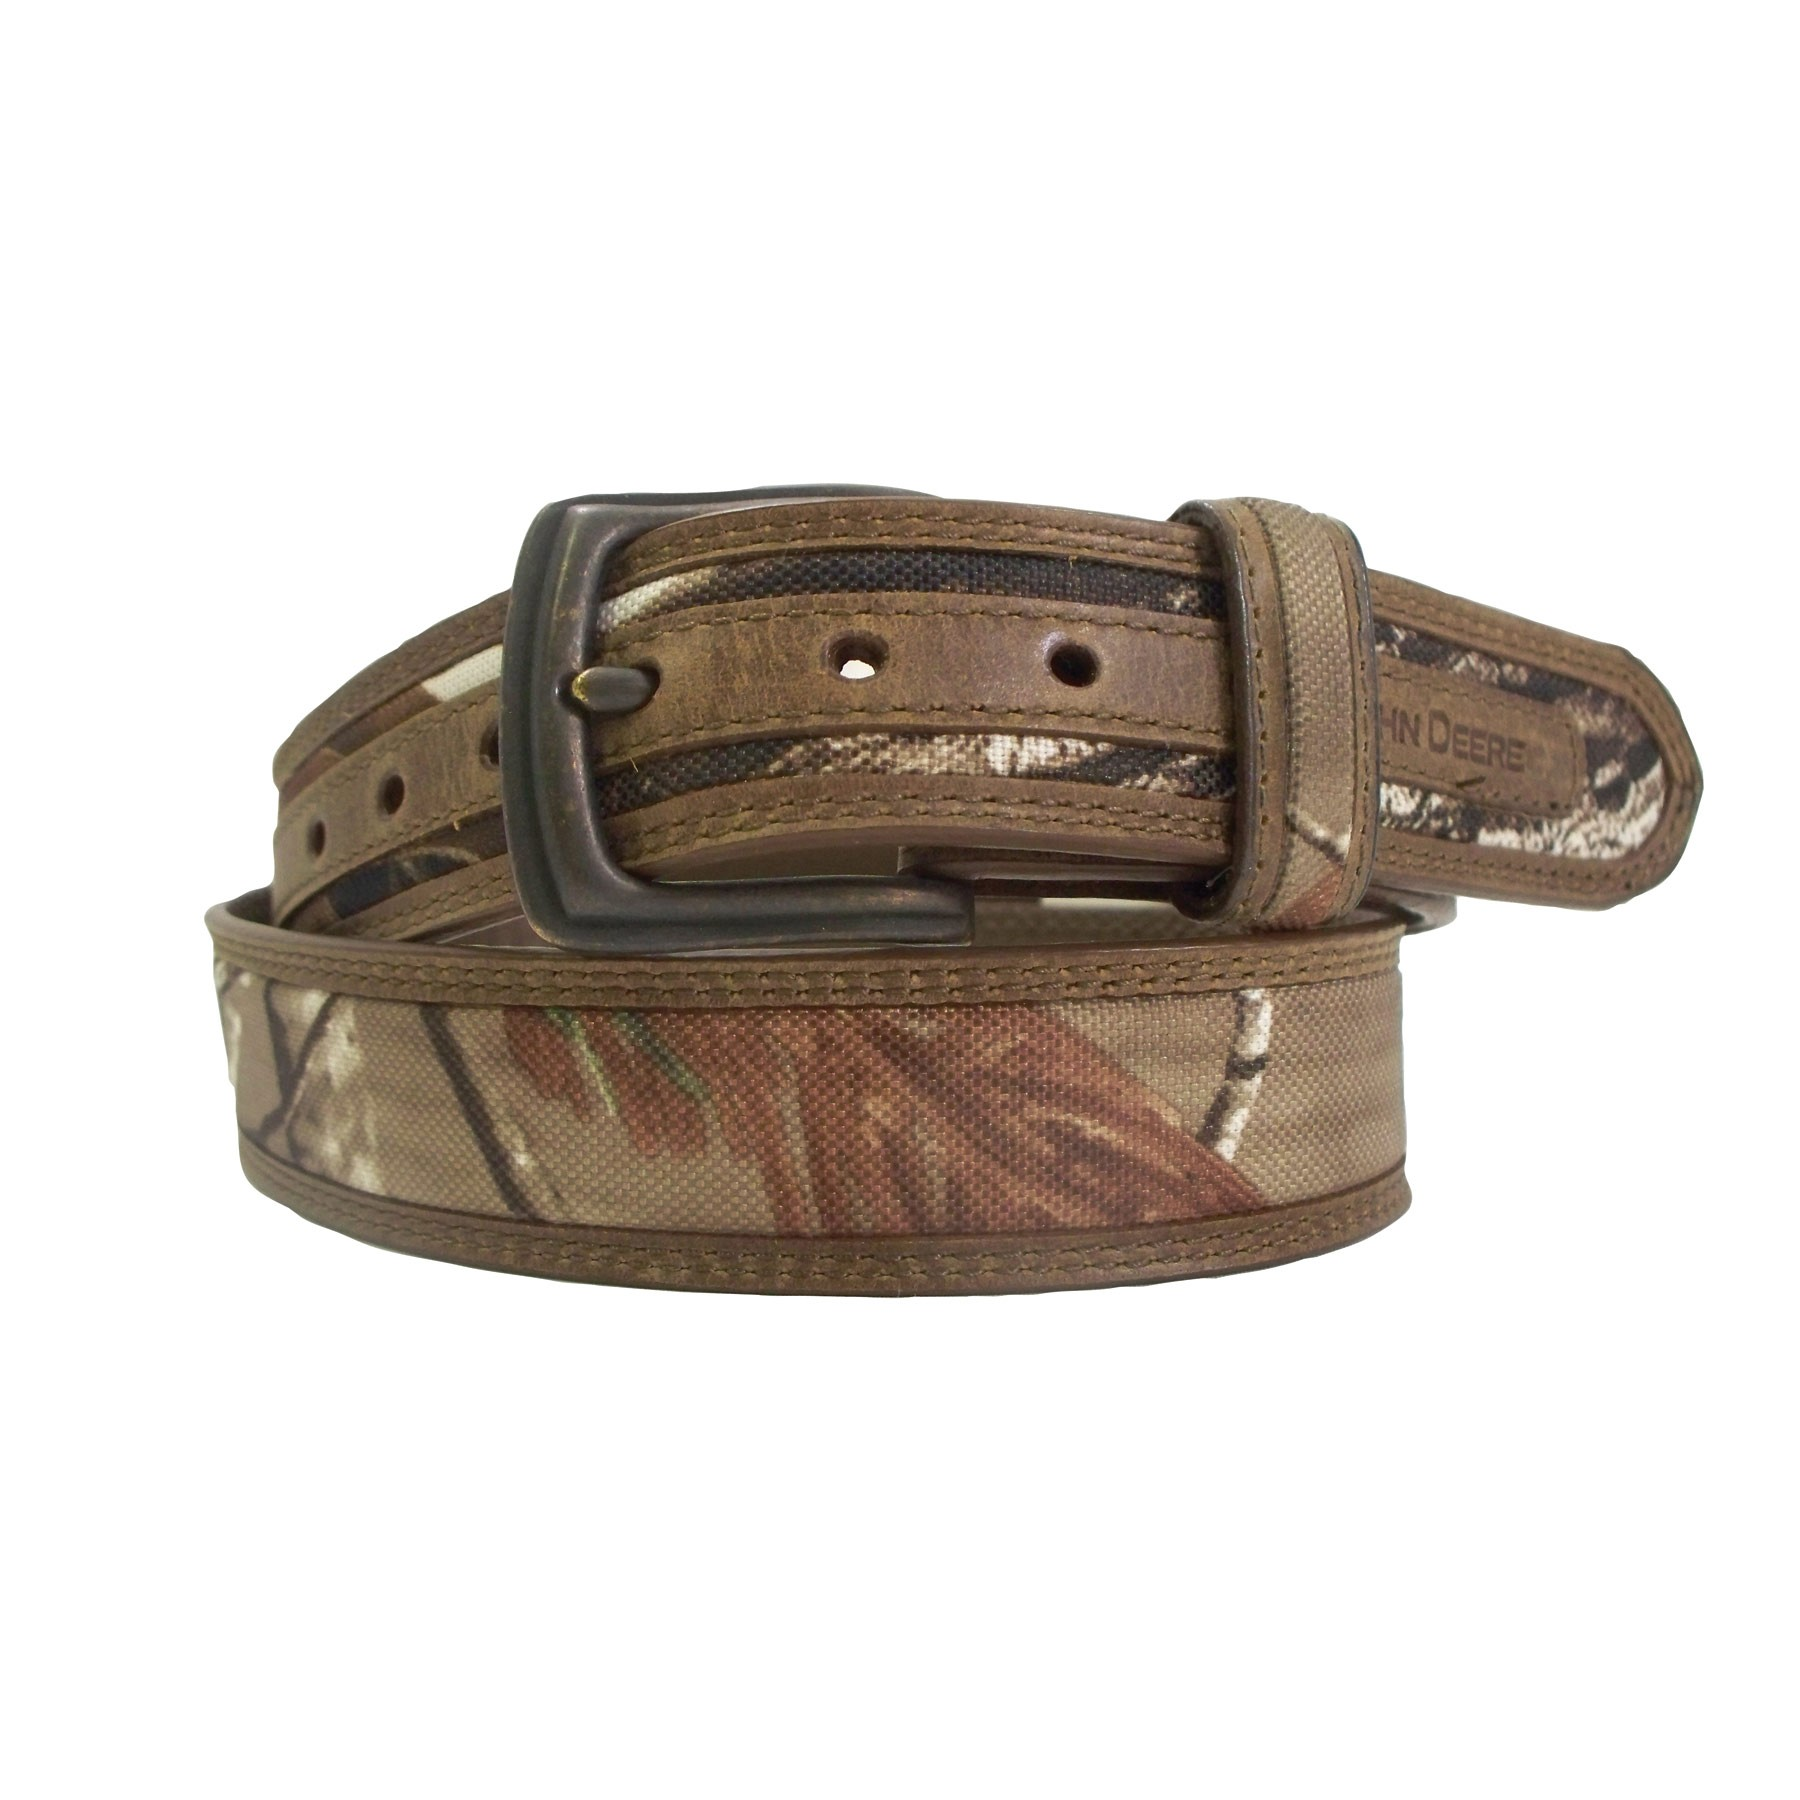 ... buff tan leather combine to make a great-looking boys John Deere belt